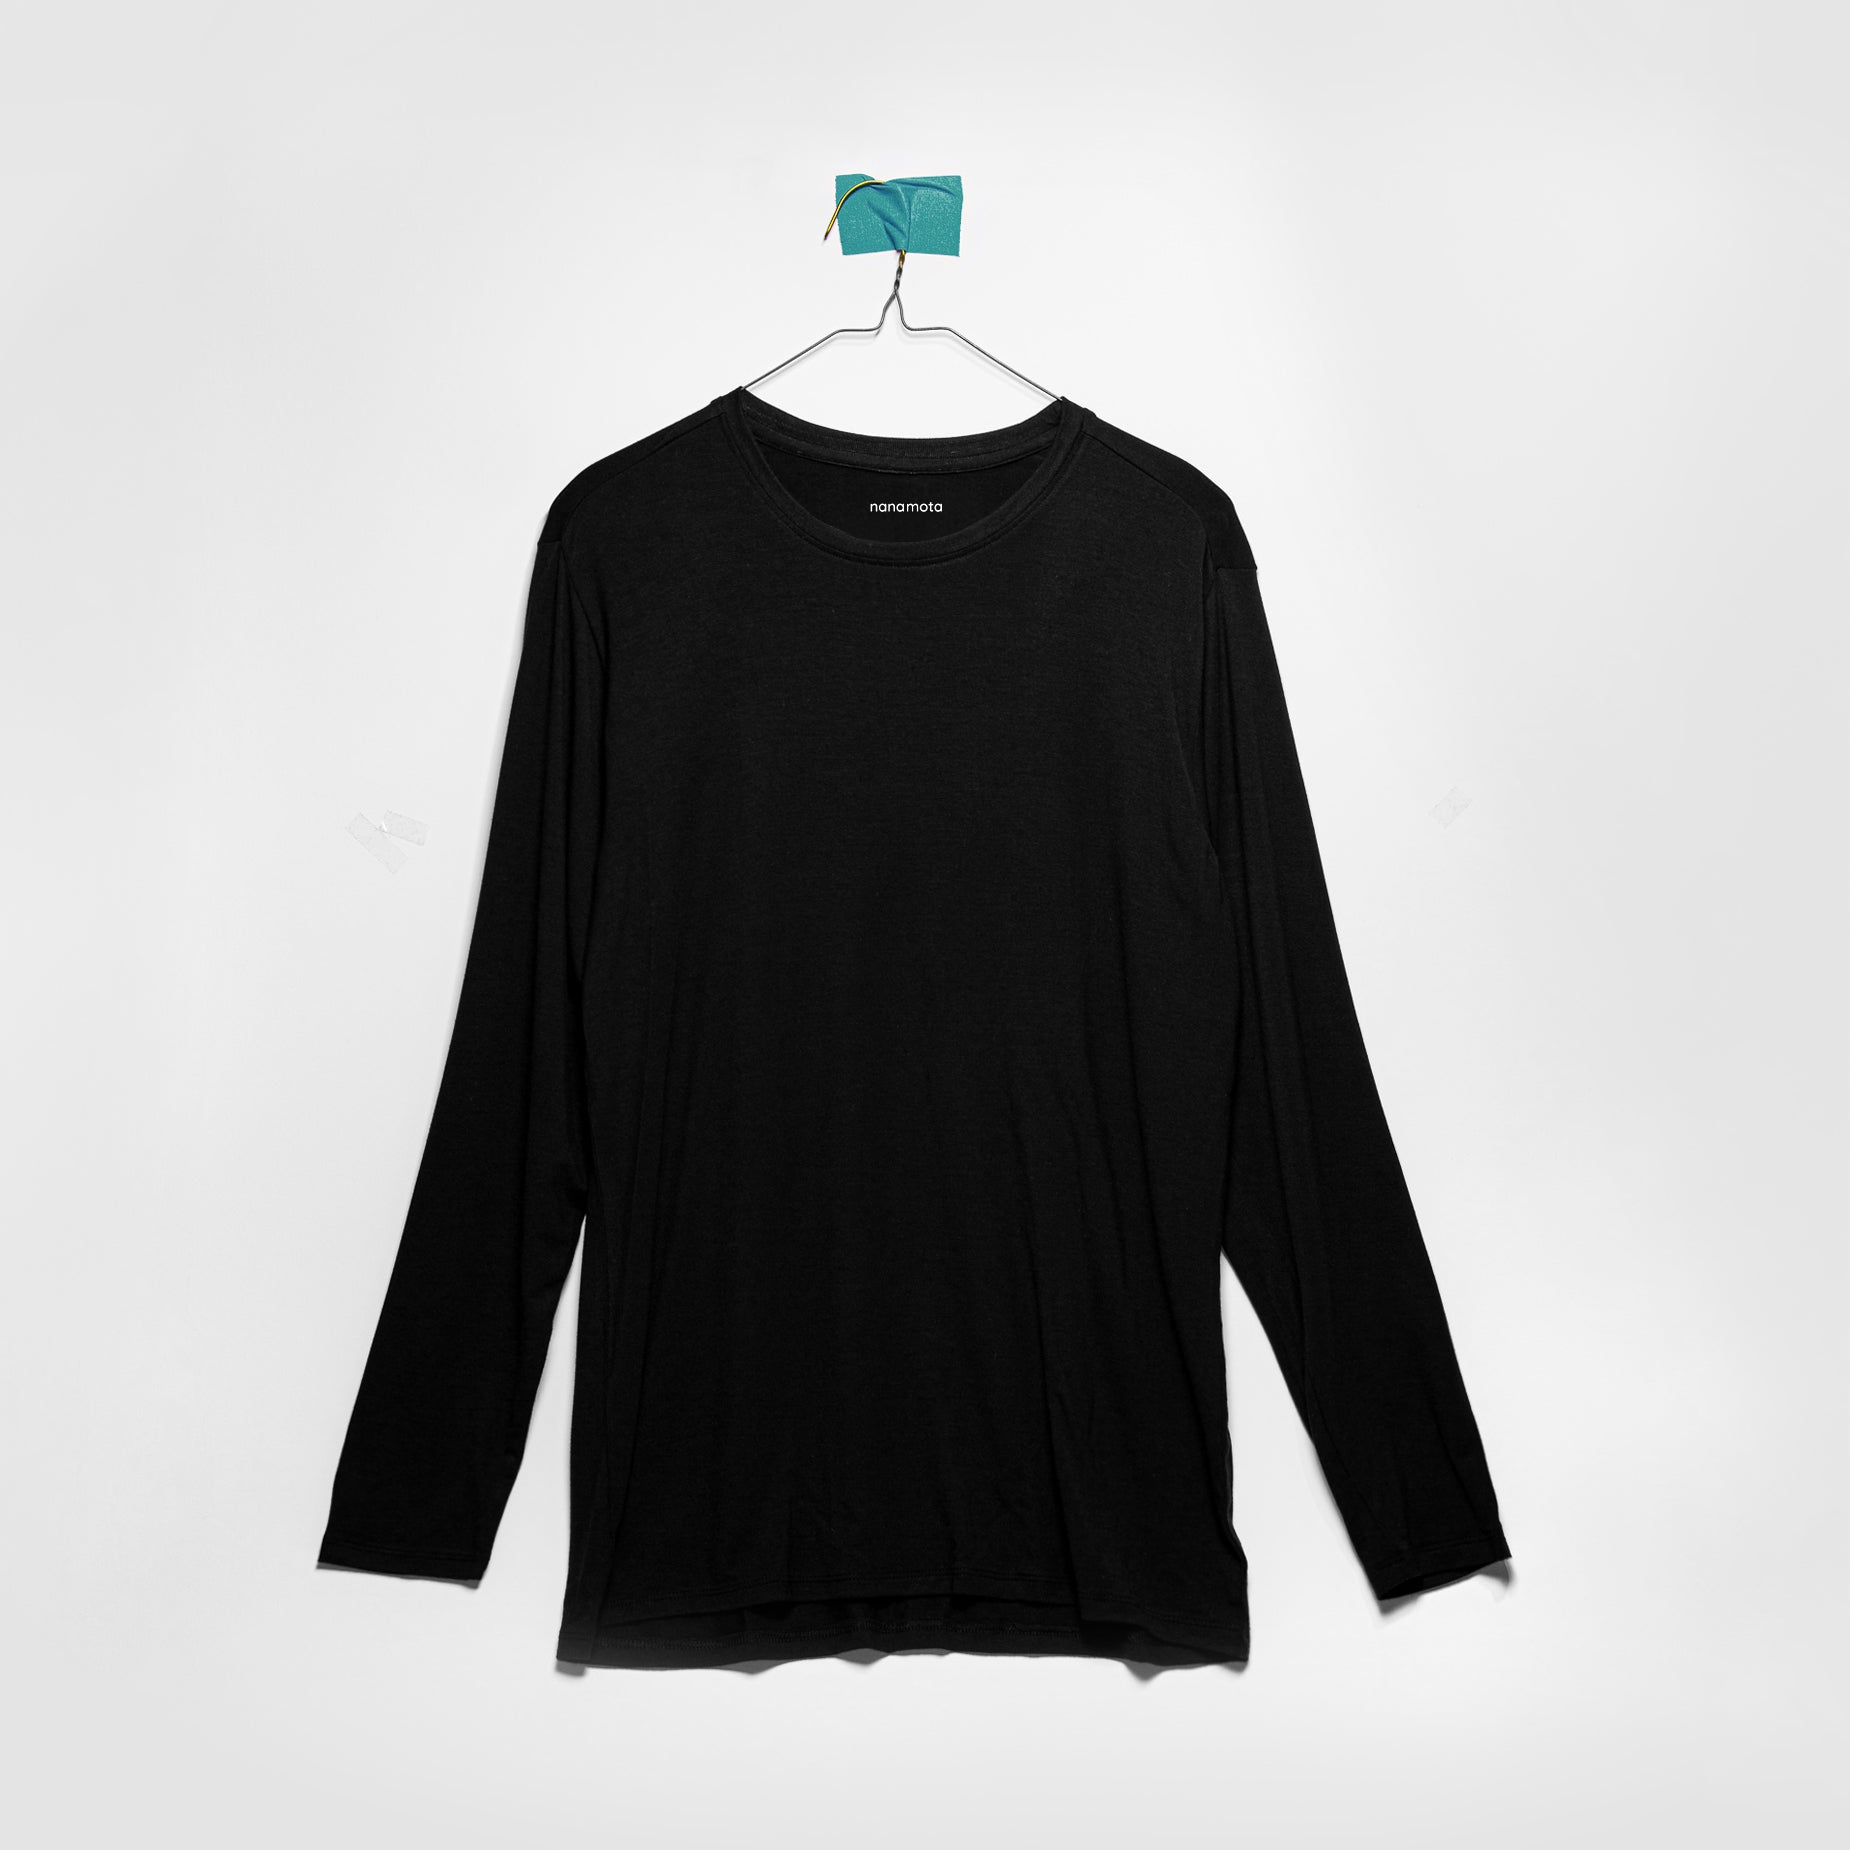 'THE SOFTEST TEE' MENS FITTED LONG-SLEEVE BLACK